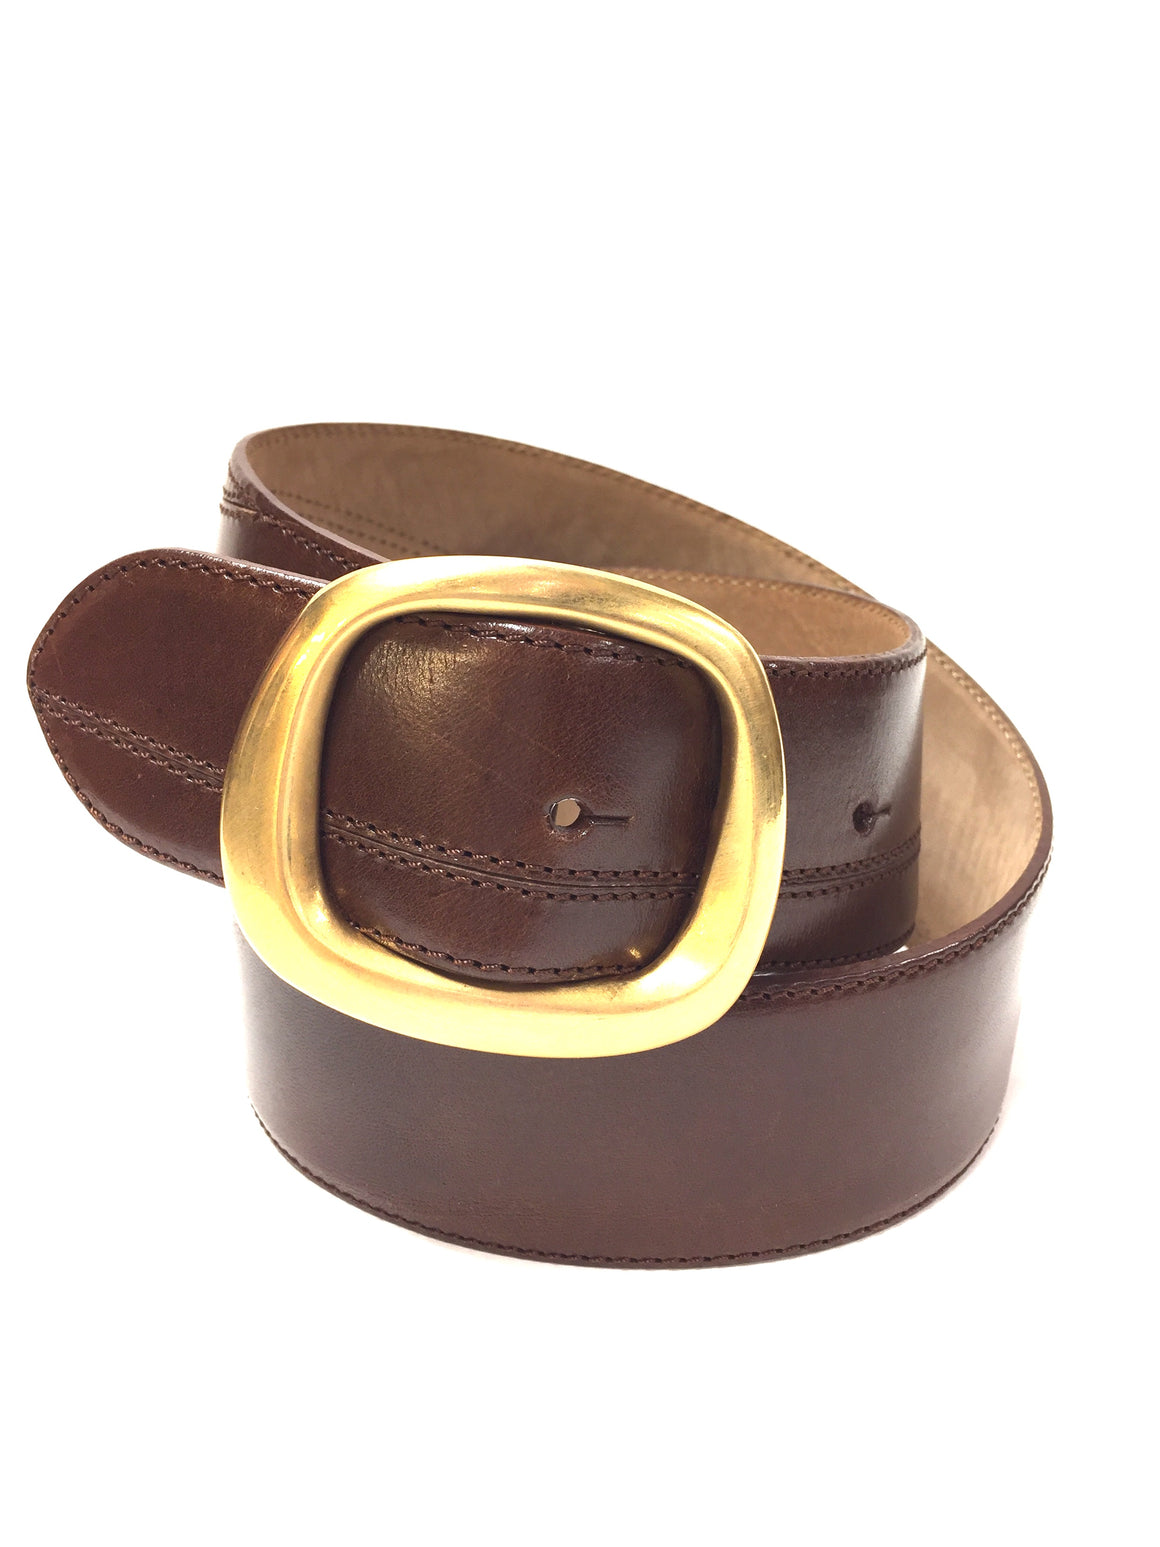 DE VECCHI  Tobacco-Brown Leather Matte-Gold Buckle Waist Belt